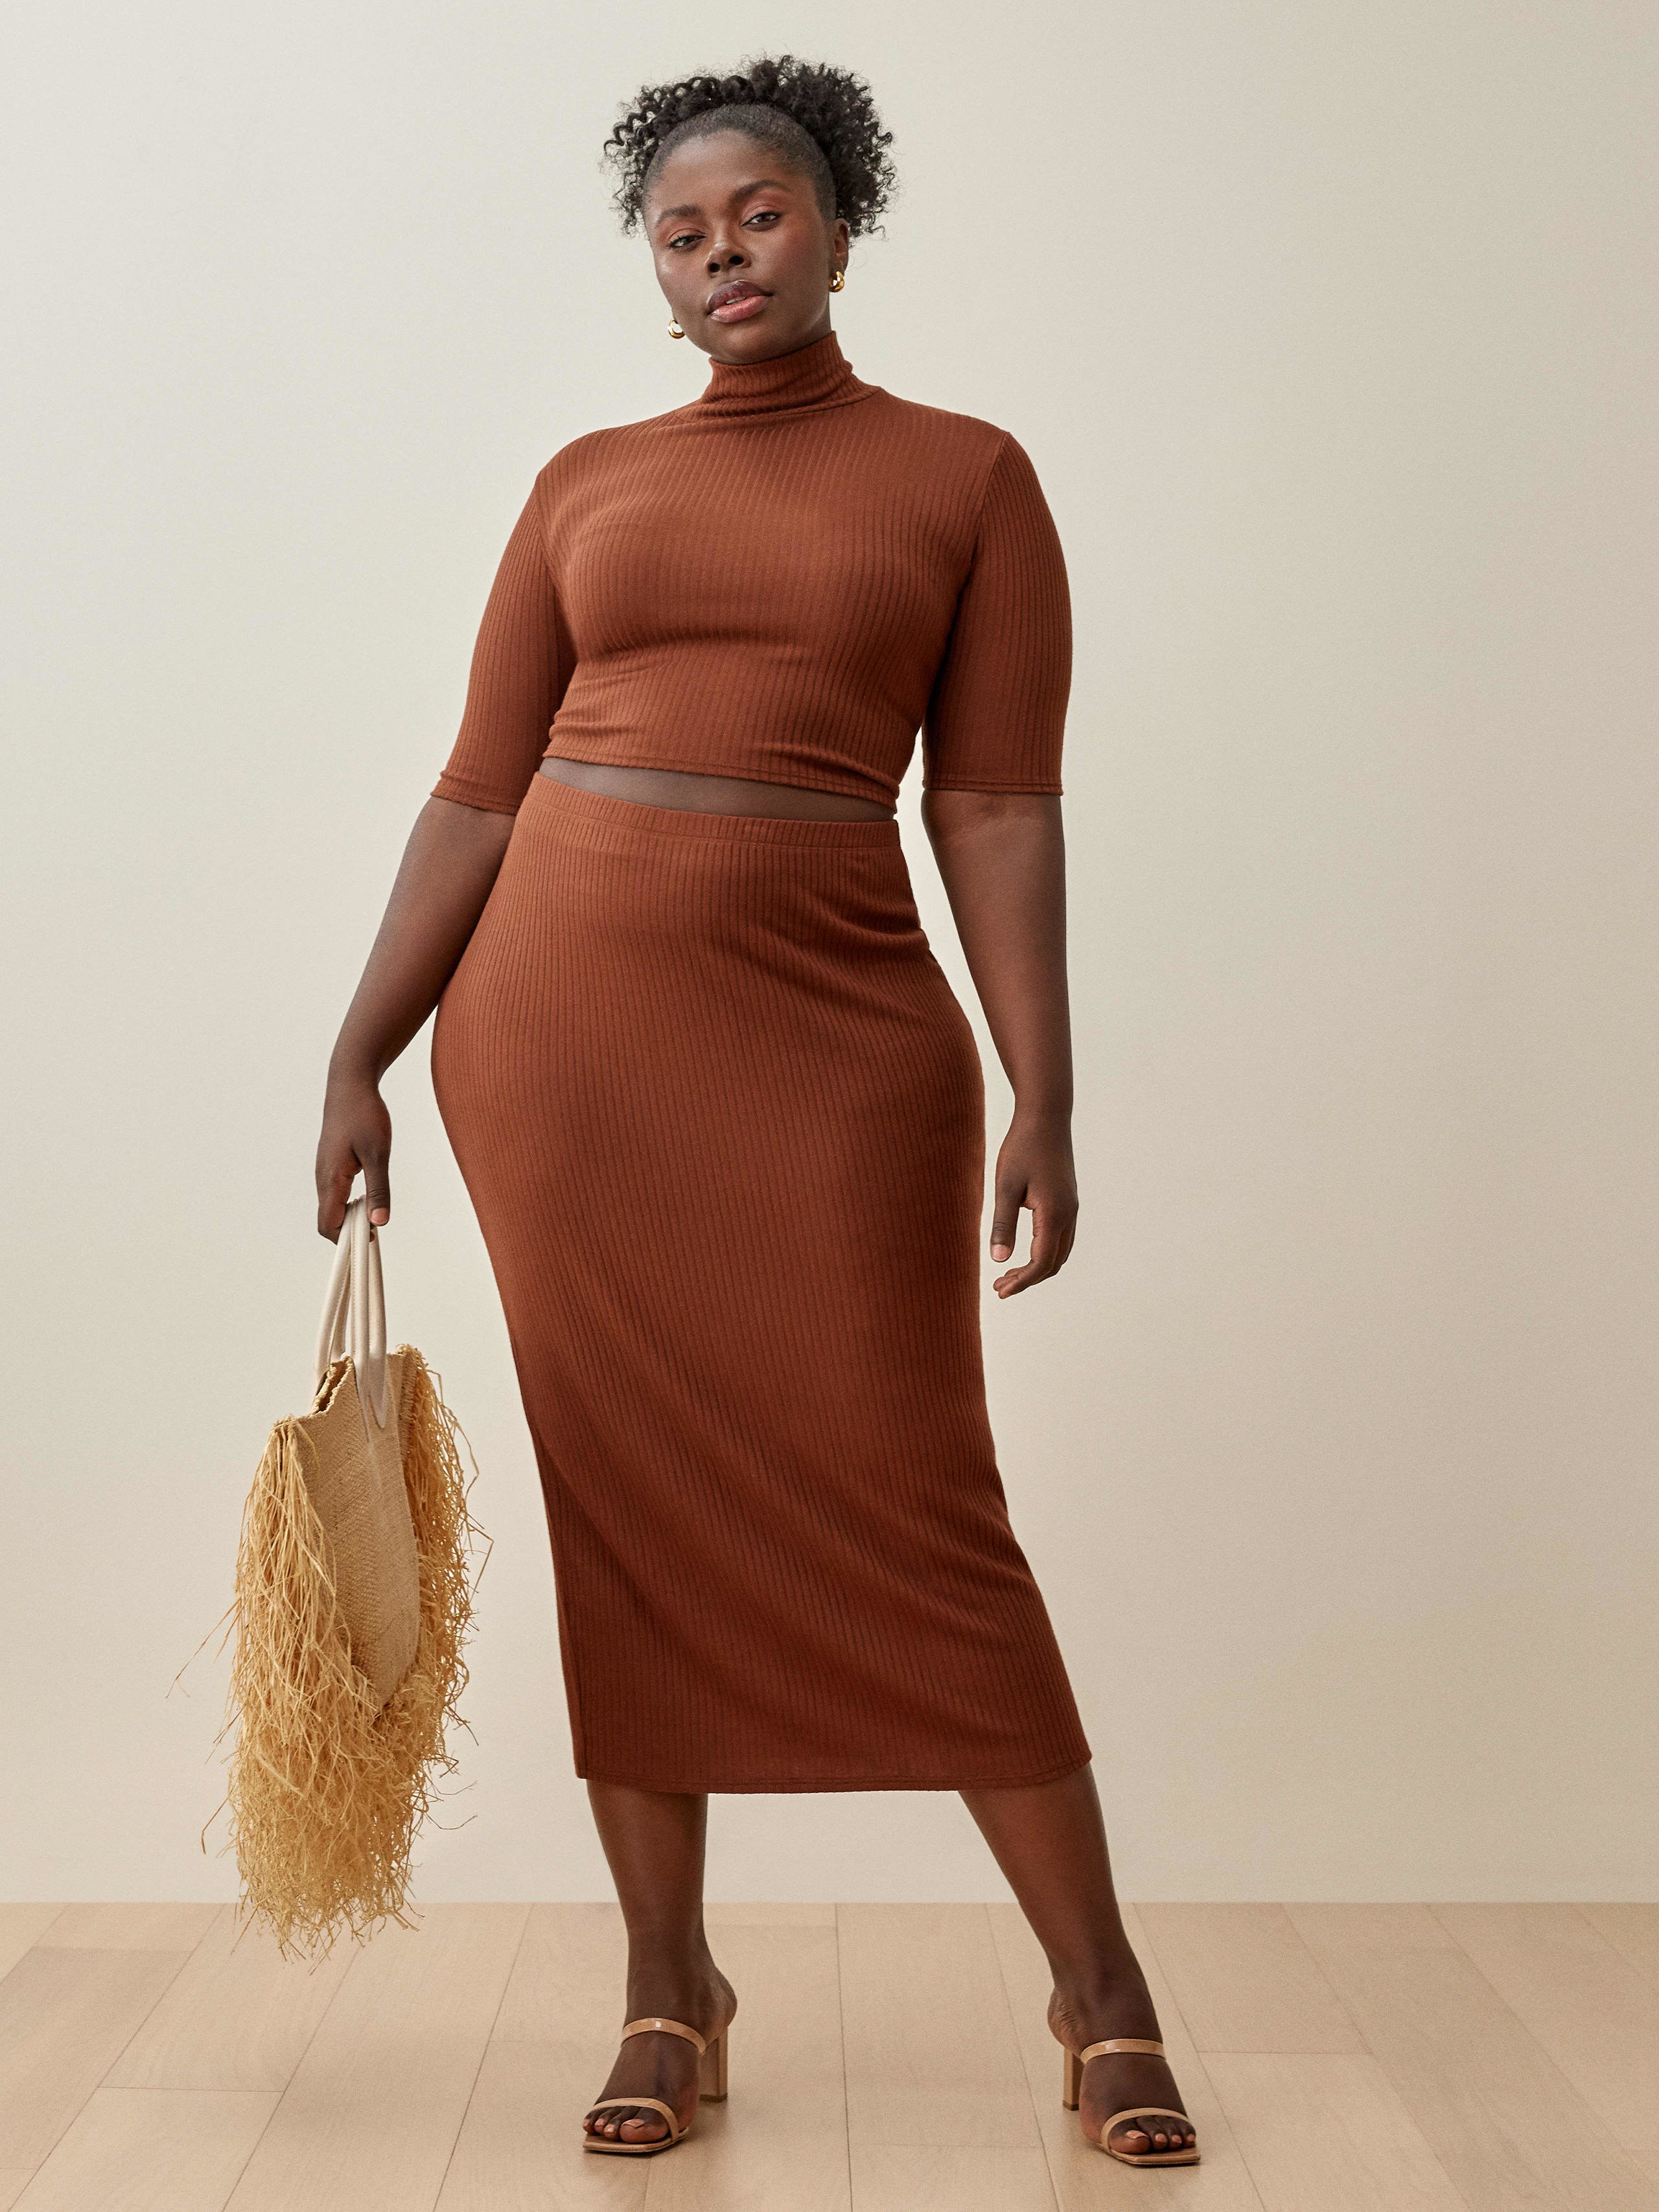 the chestnut colored midi pencil skirt and three quarter sleeved crop top